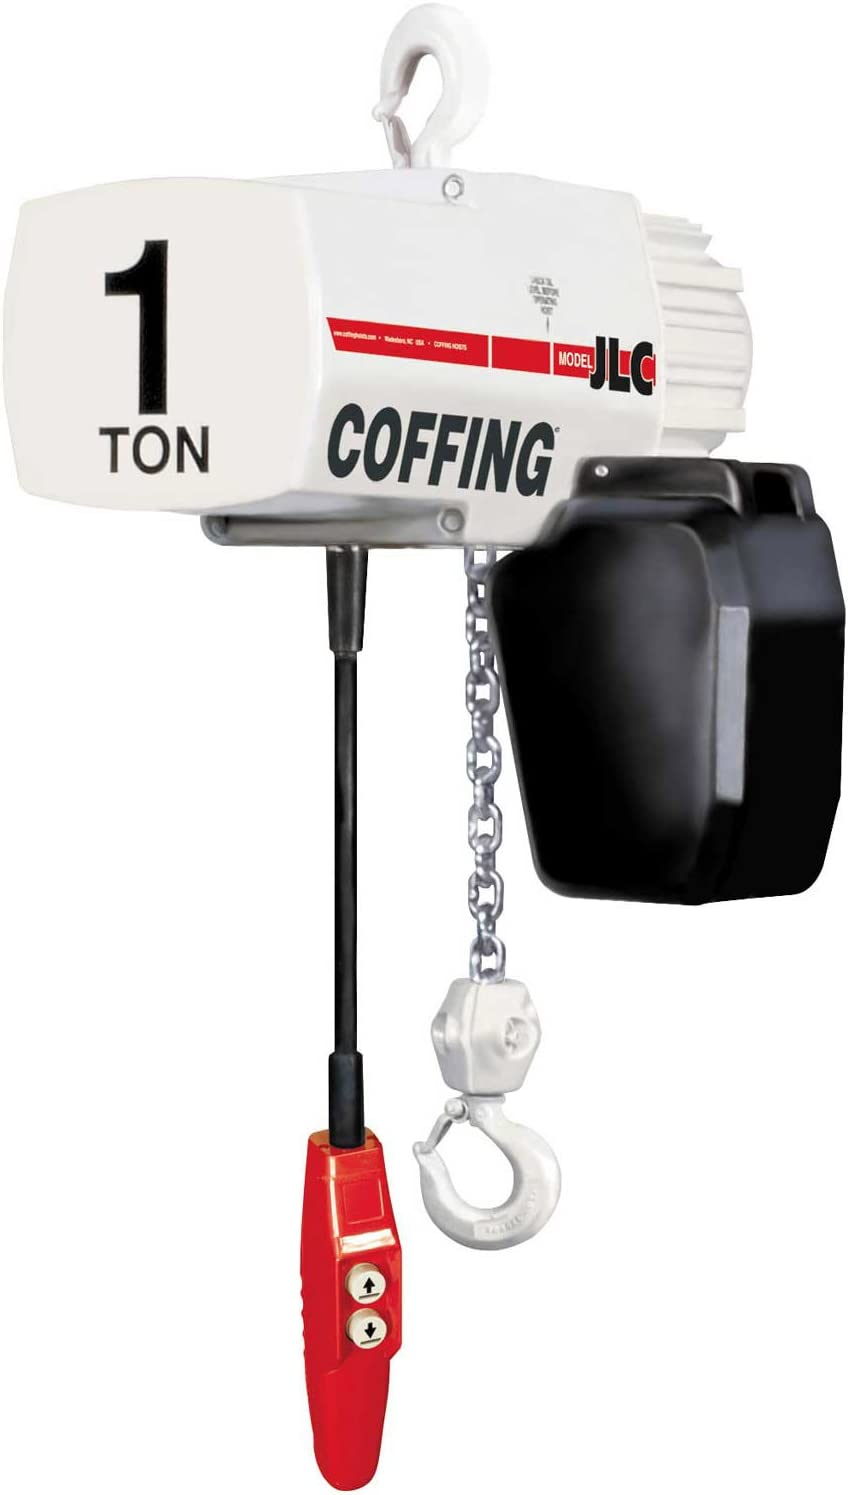 Amazon.com: Coffing JLC Electric Chain Hoist, 2 Ton Cap., 20 Ft. Lift,  115/230V, 8 Fpm: Everything ElseAmazon.com